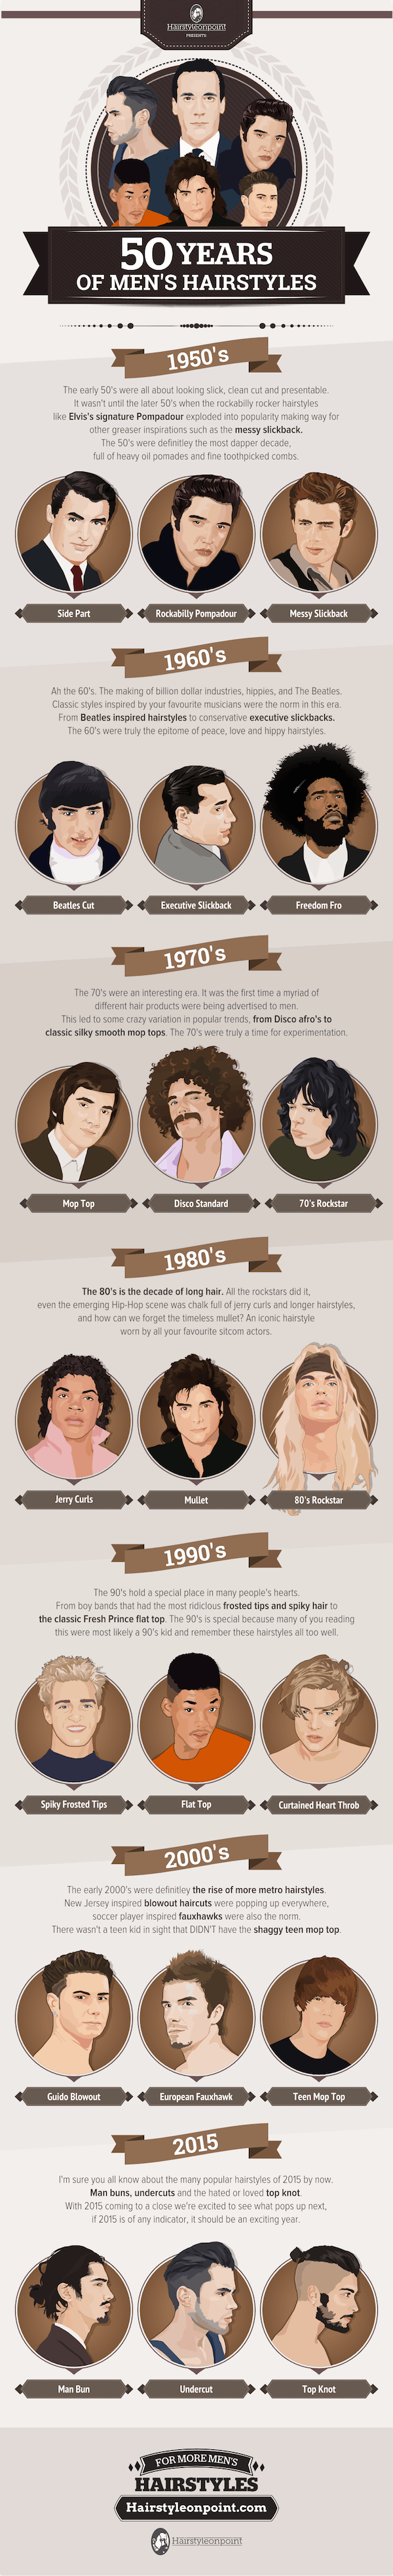 Hair Style Infographic